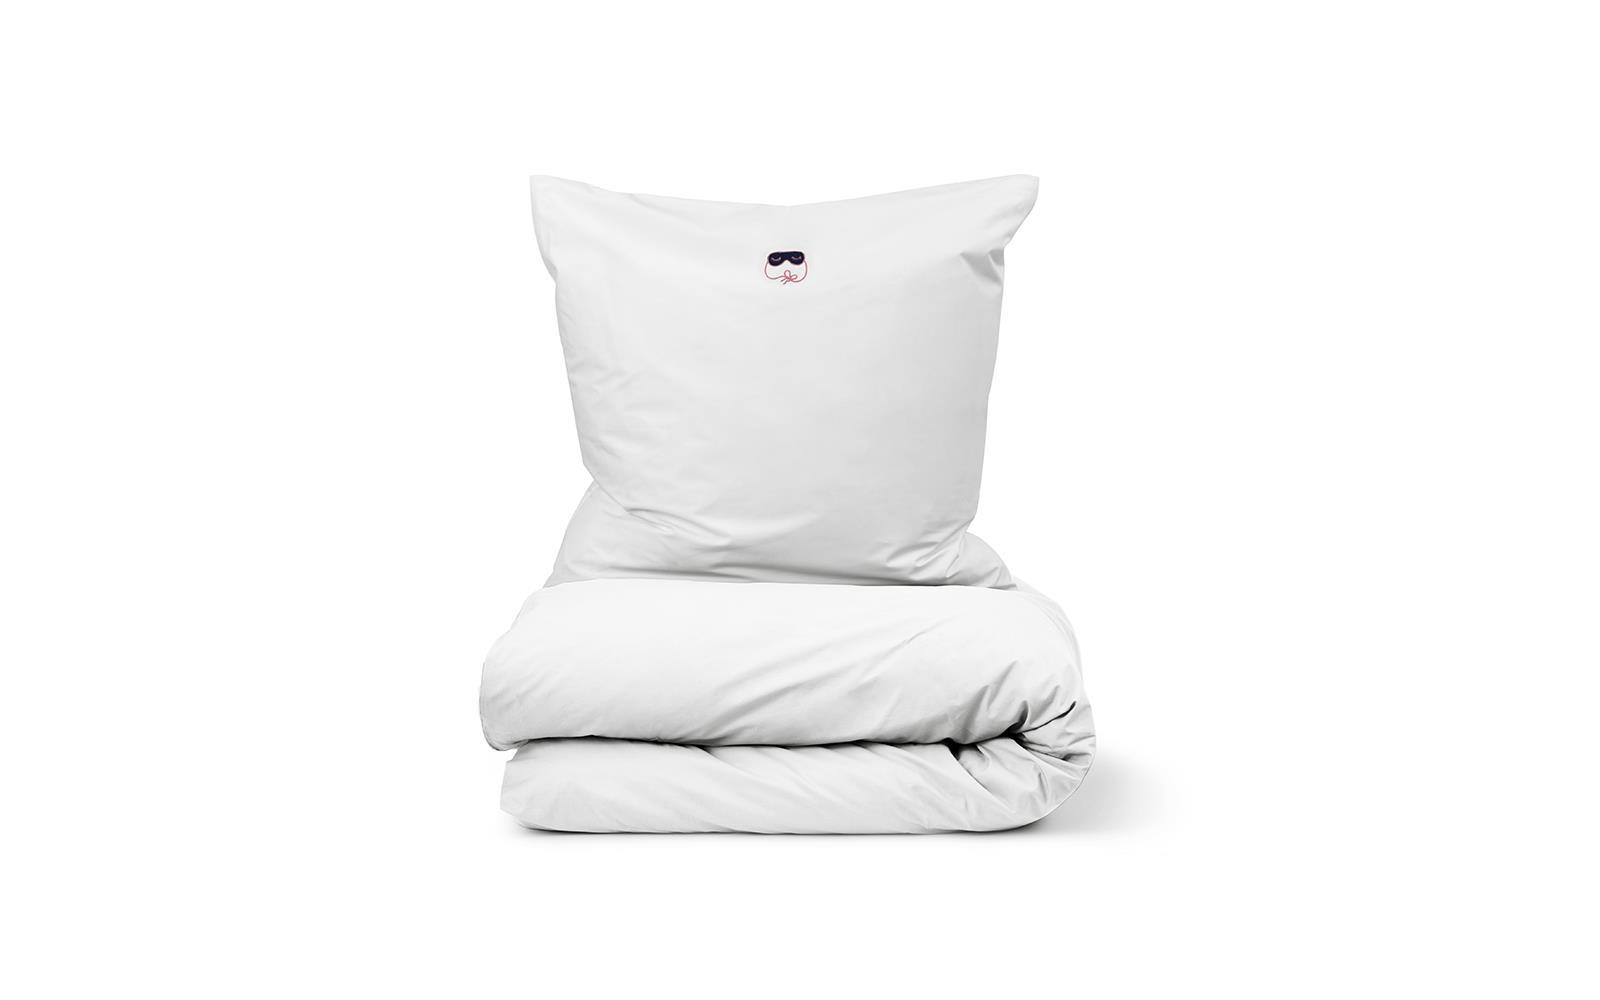 Normann Copenhagen - Snooze Bedding 140 x 200 cm - Deep Sleep White (310500)